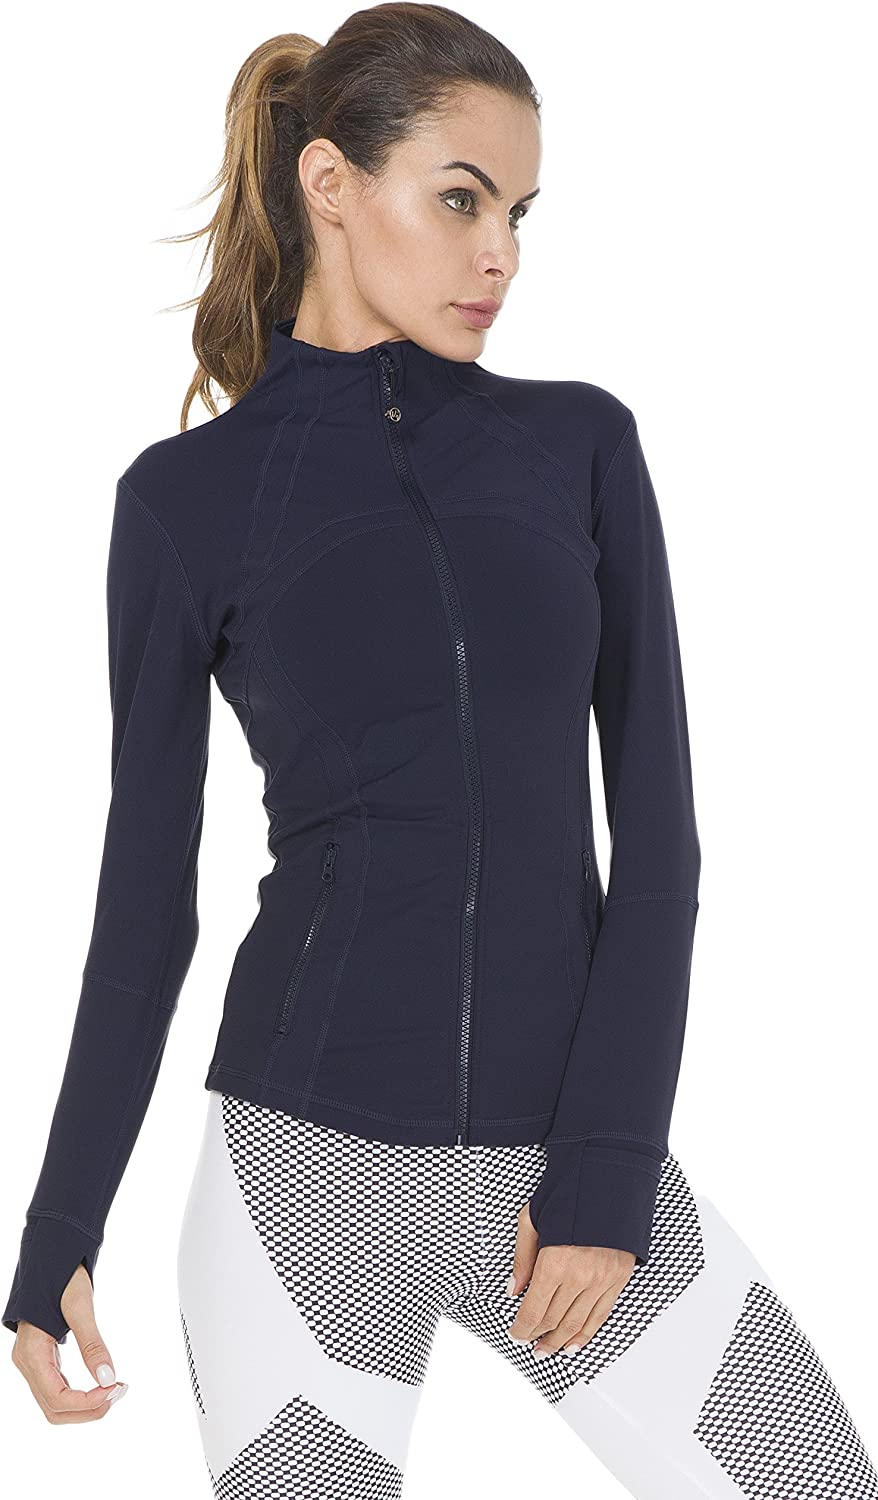 QUEENIEKE Womens Running Jacket Slim Fit and Cottony-Soft Handfeel Sports Tops with Full Zip Side Pocket